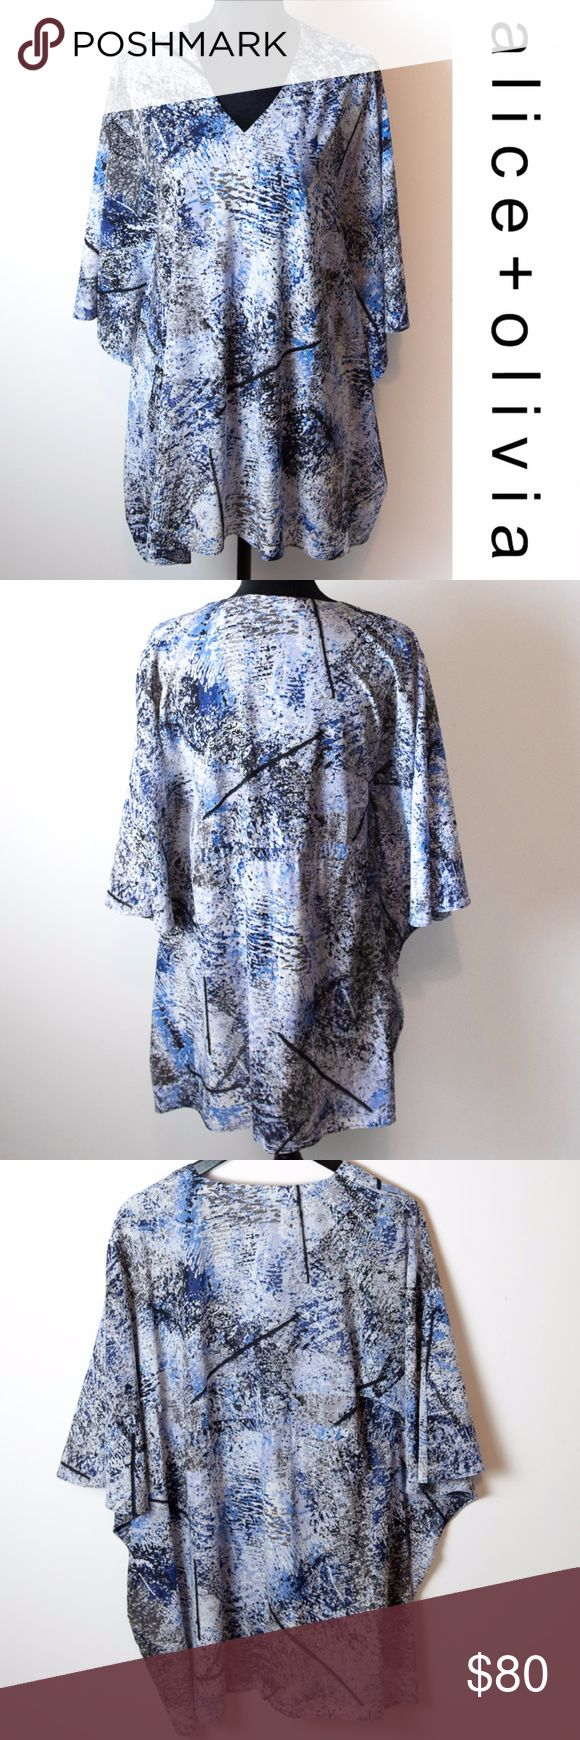 Alice + Oliva Blue Graphic Pattern Silk Blouse Sm Alice + Oliva blouse. Size small tunic top with short batwing sleeves. Black, blue, white and gray abstract splatter graphic pattern. V-neck. Silk and spandex blend. Alice + Olivia Tops Blouses